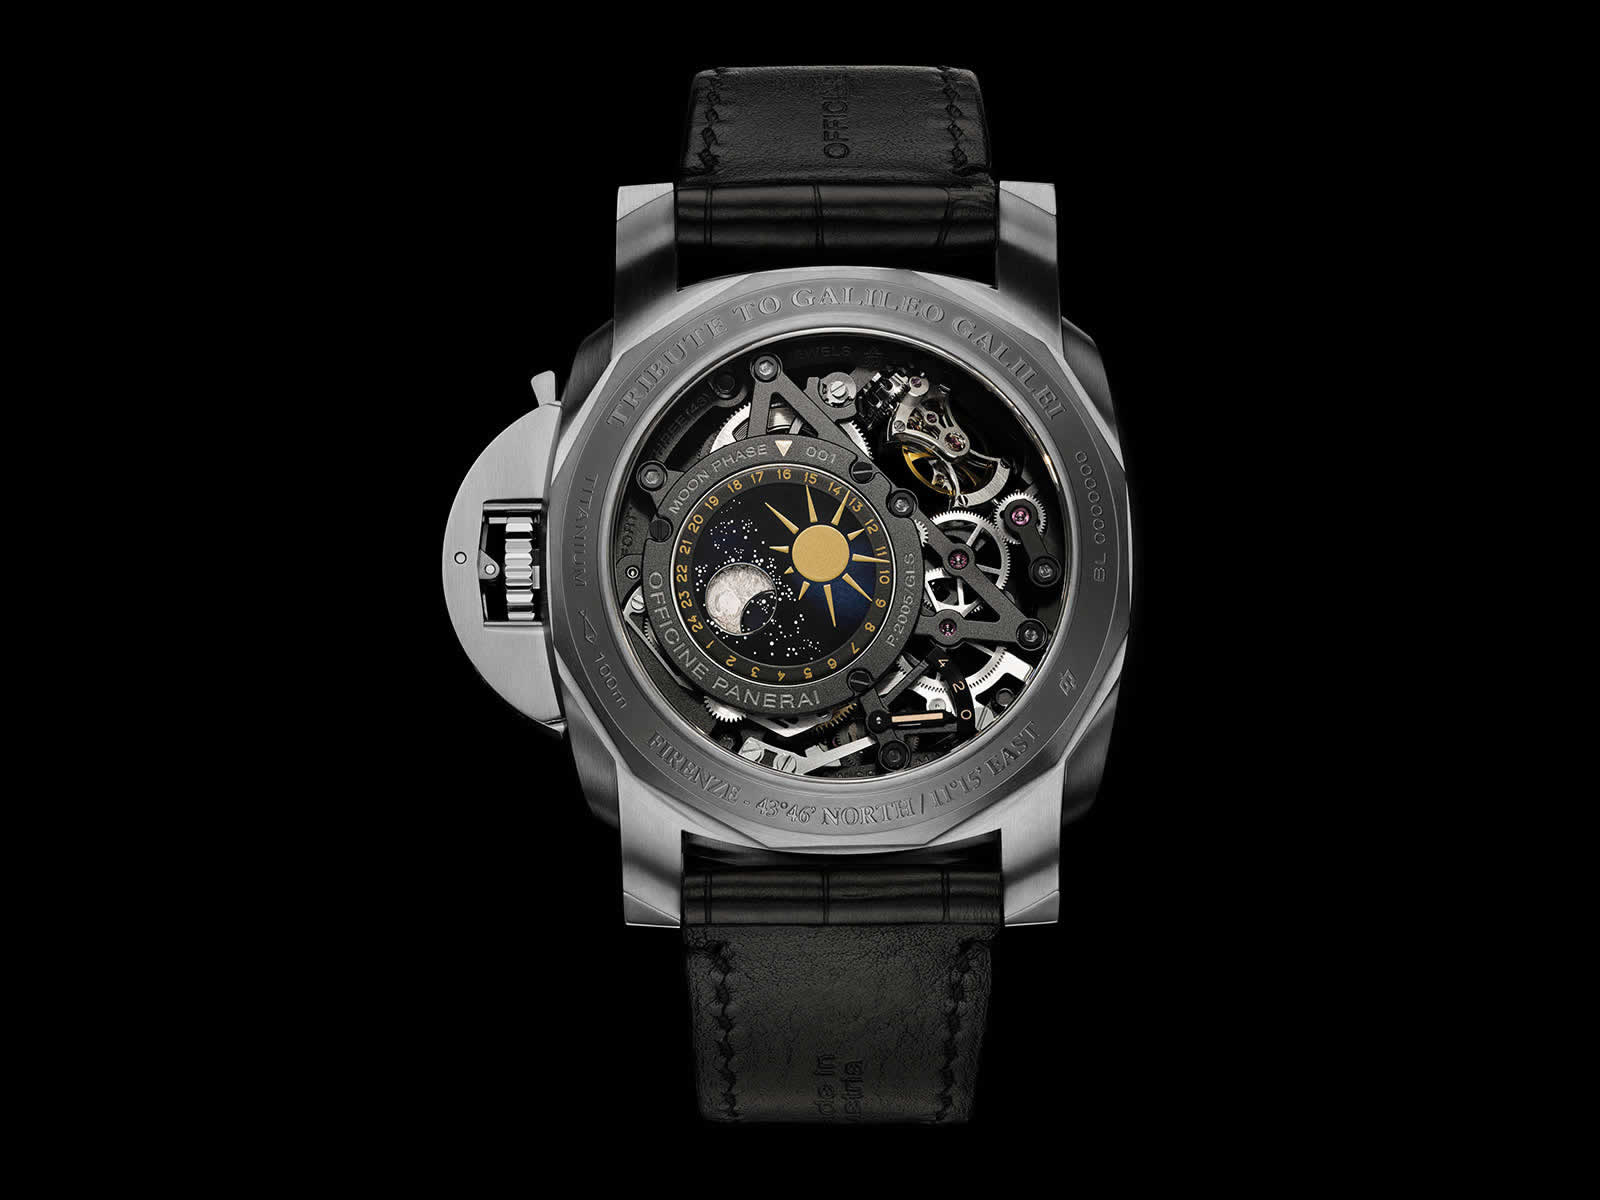 Panerai-L-Astronomo-Luminor-1950-Tourbillon-Moon-Phases-Equation-of-Time-Gmt-Pam00920-back.jpg